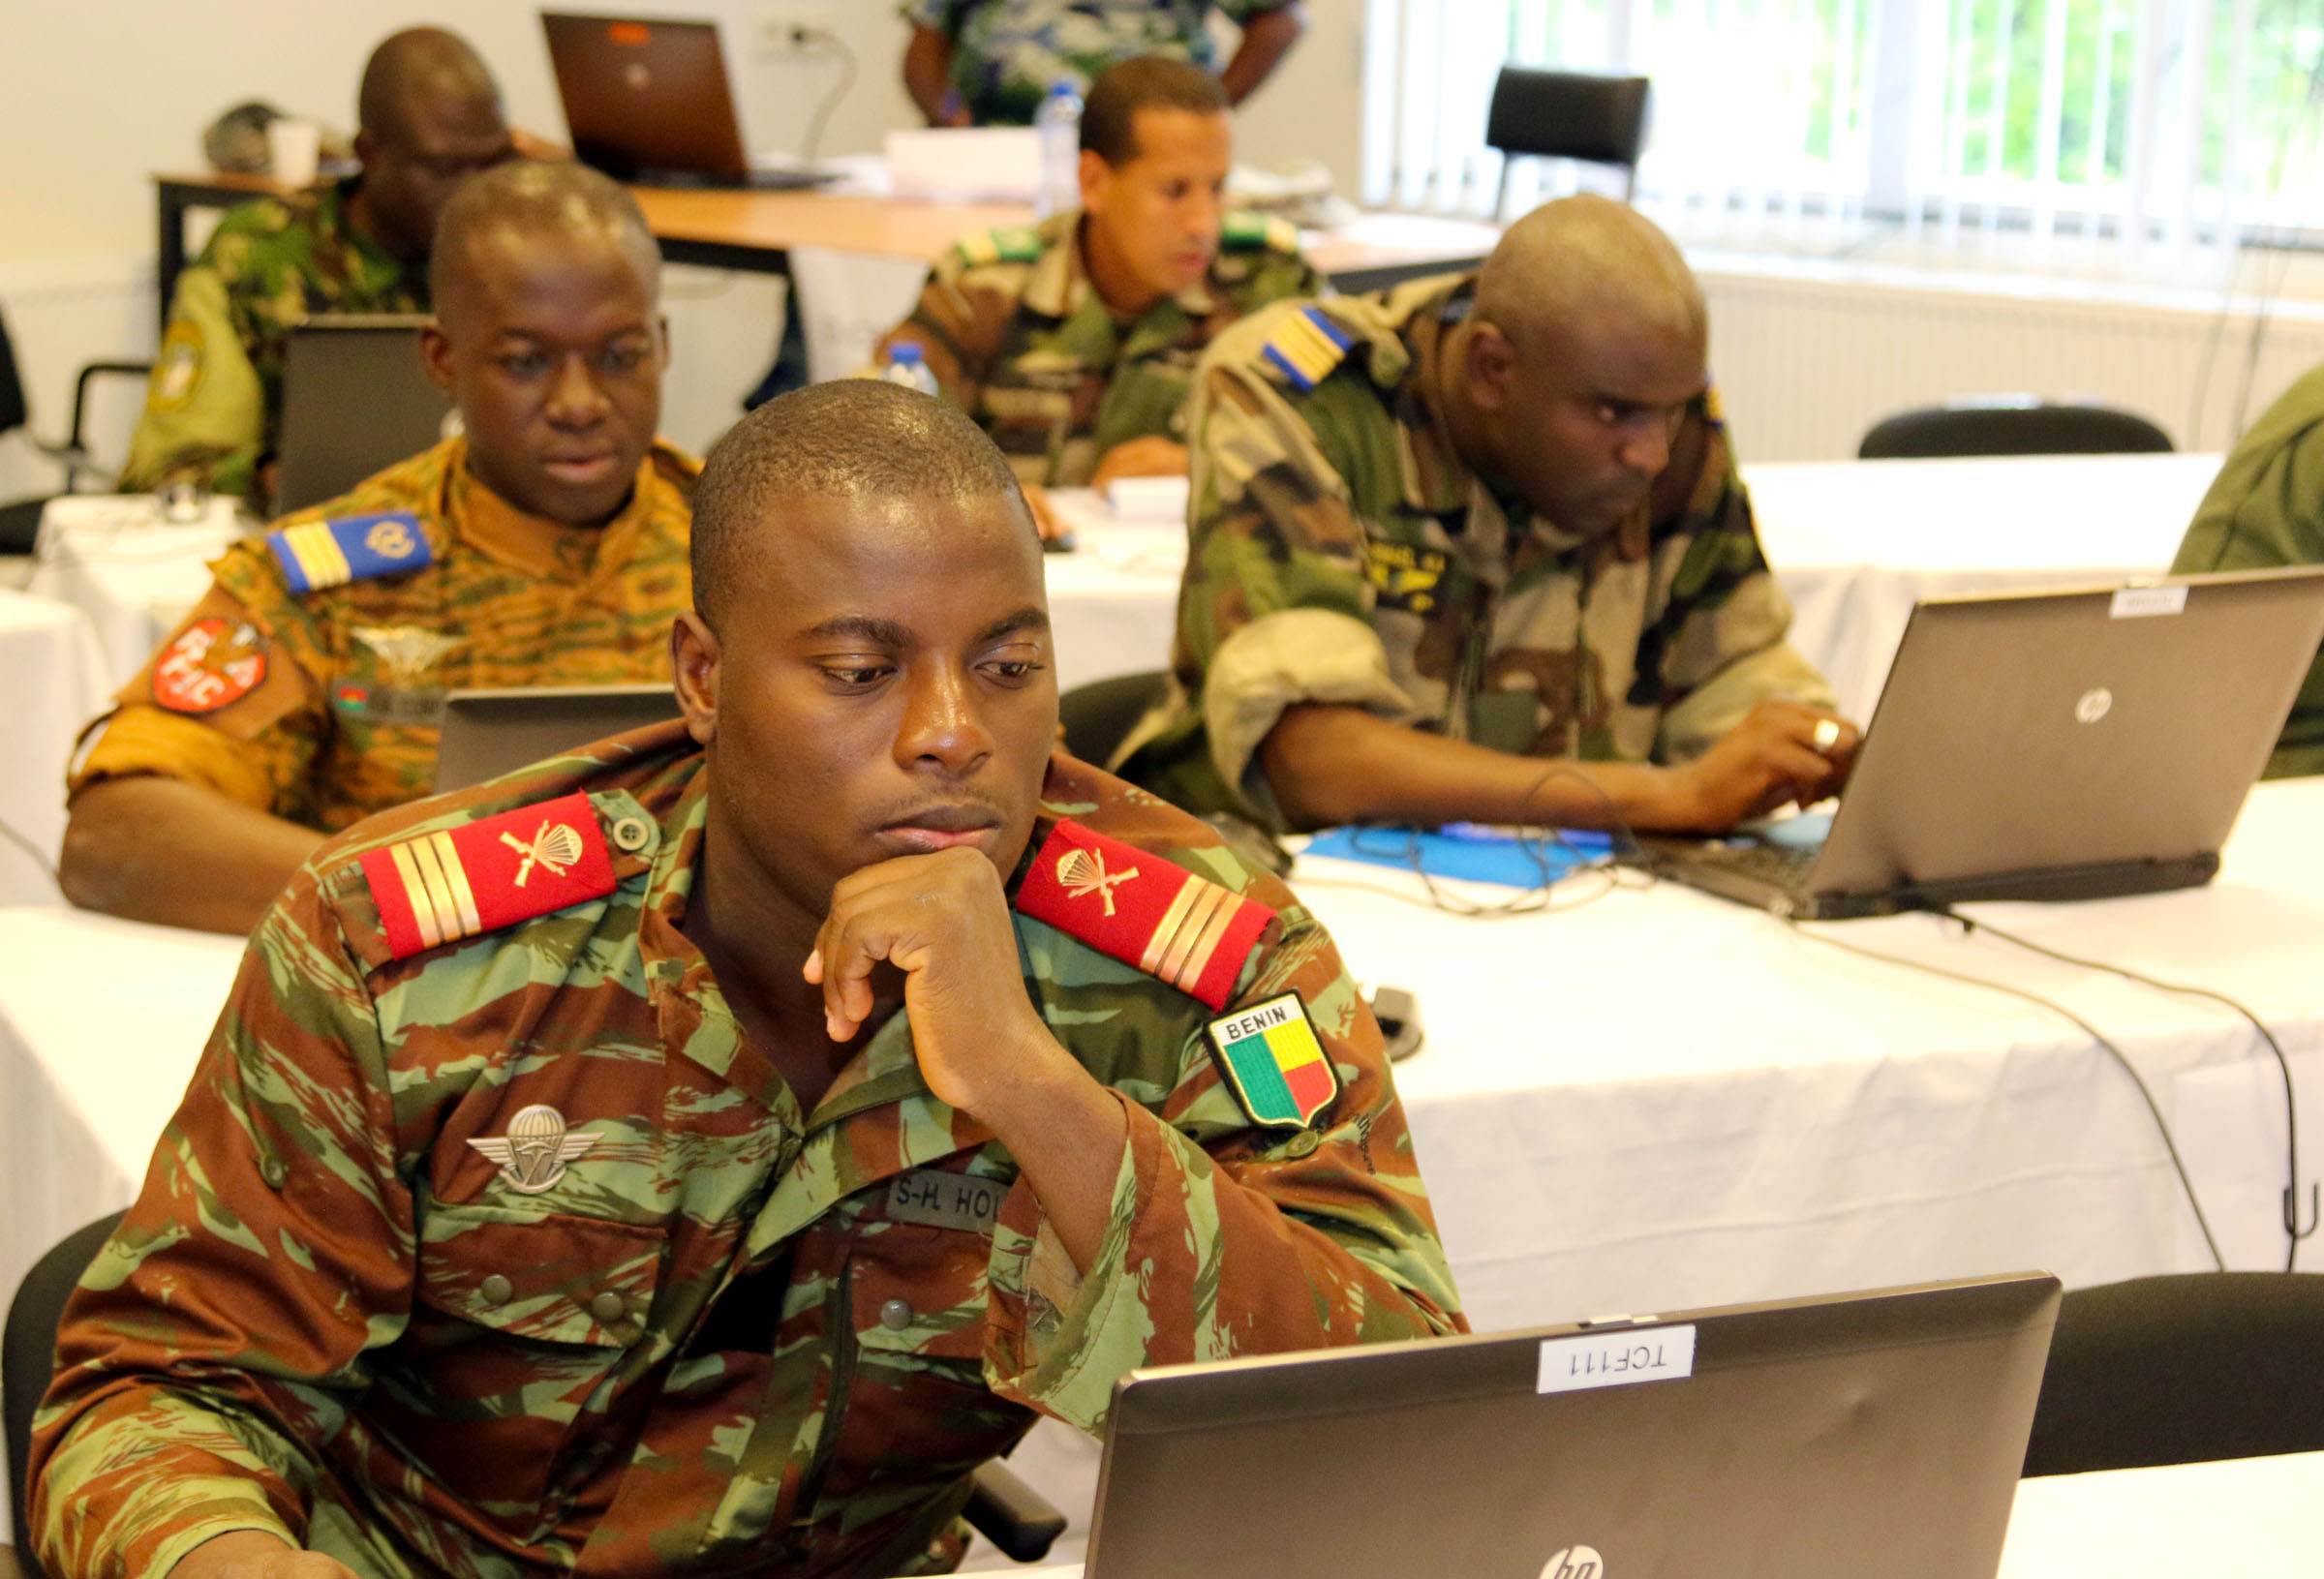 Staff members participating in Western Accord 2015 prepare for the upcoming command post exercise at Winkelman Kazerne, Harskamp, The Netherlands, July 22. The exercise benefits participating militaries and encourages them to work together in preparation for multi-national responses to peacekeeping and humanitarian operations. (U.S. Army Africa photo by Staff Sgt. Killo Gibson)